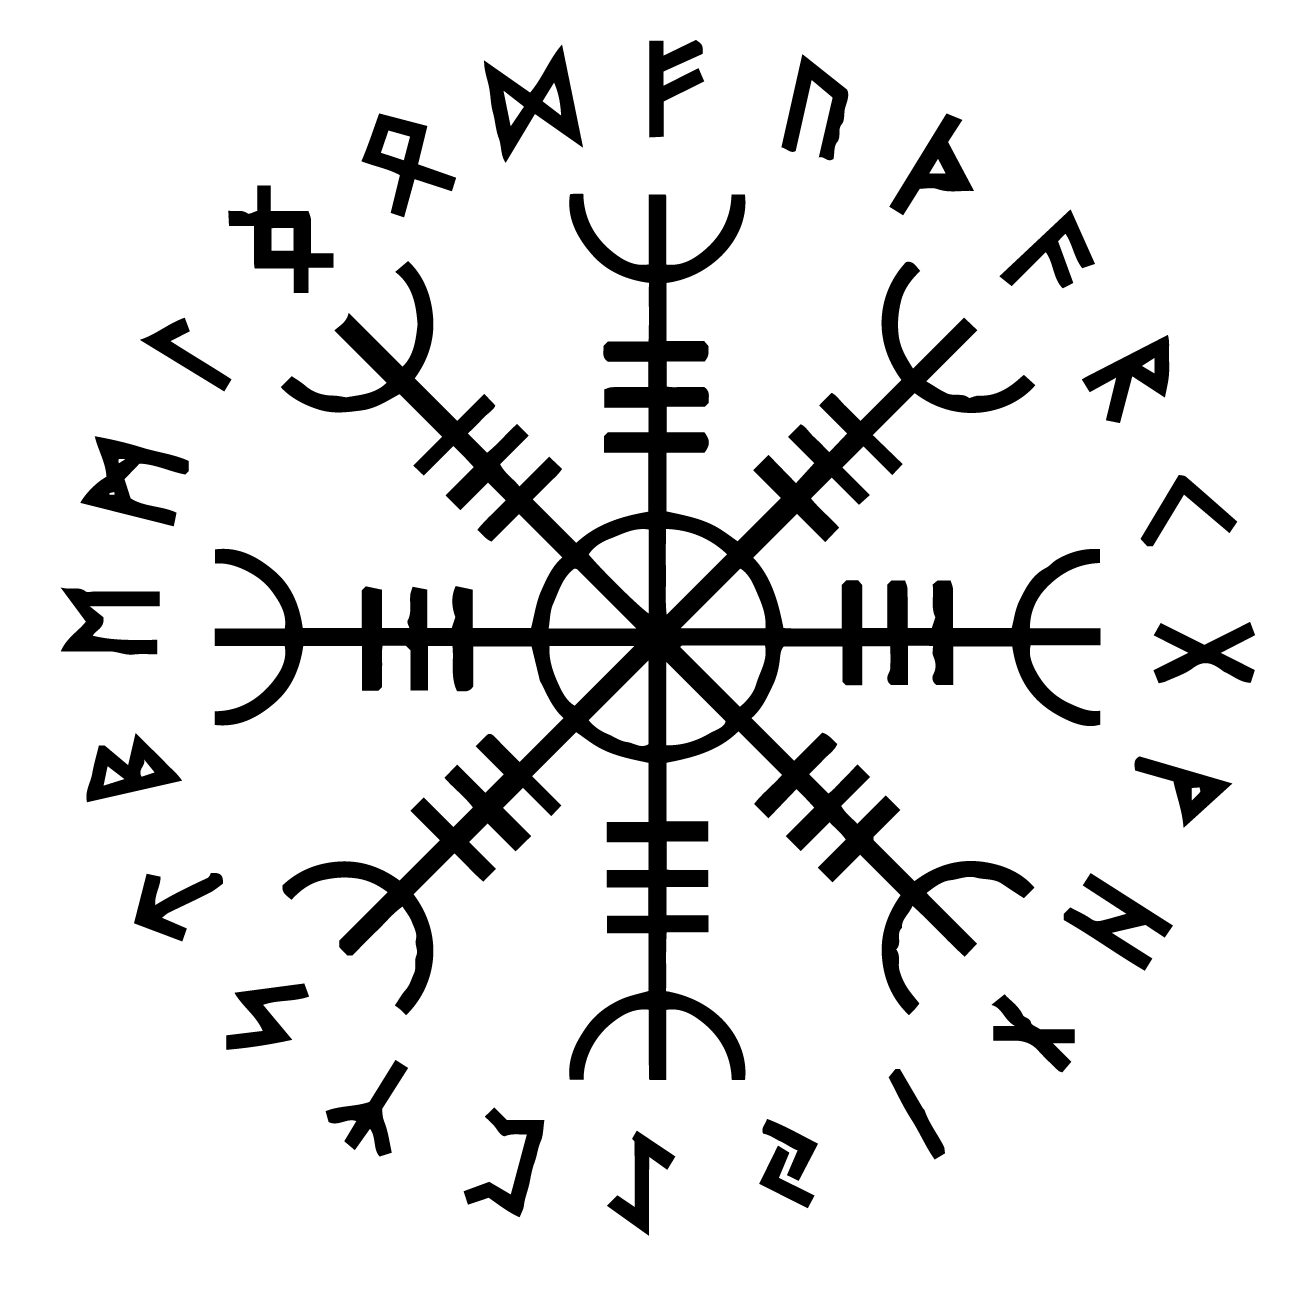 Viking Symbols And Their Meaning Viking Style In 2020 Viking Symbols And Meanings Viking Symbols Symbols And Meanings